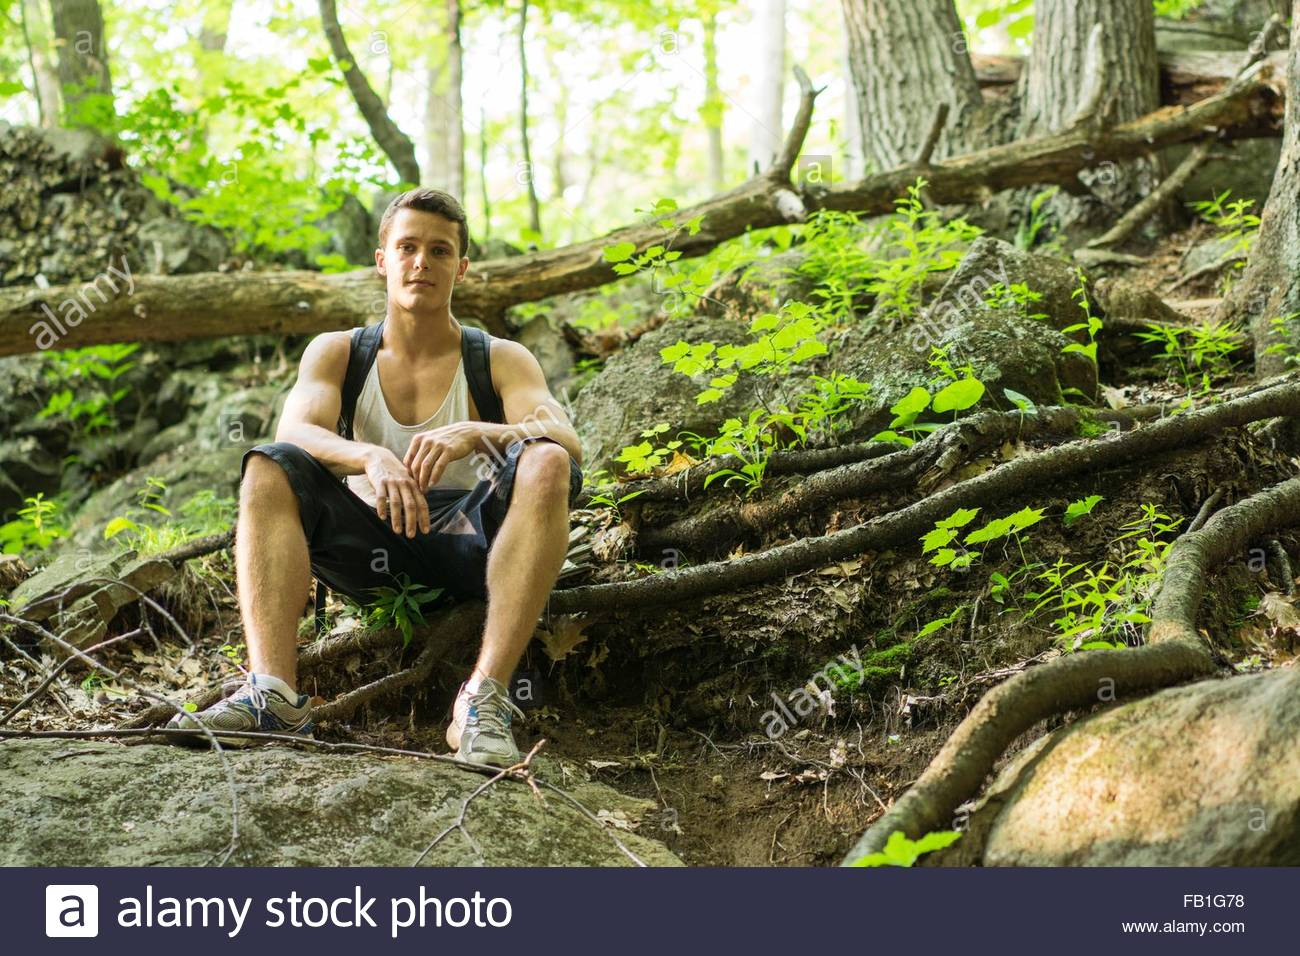 Young man sitting in forest, taking a break from hike - Stock Image